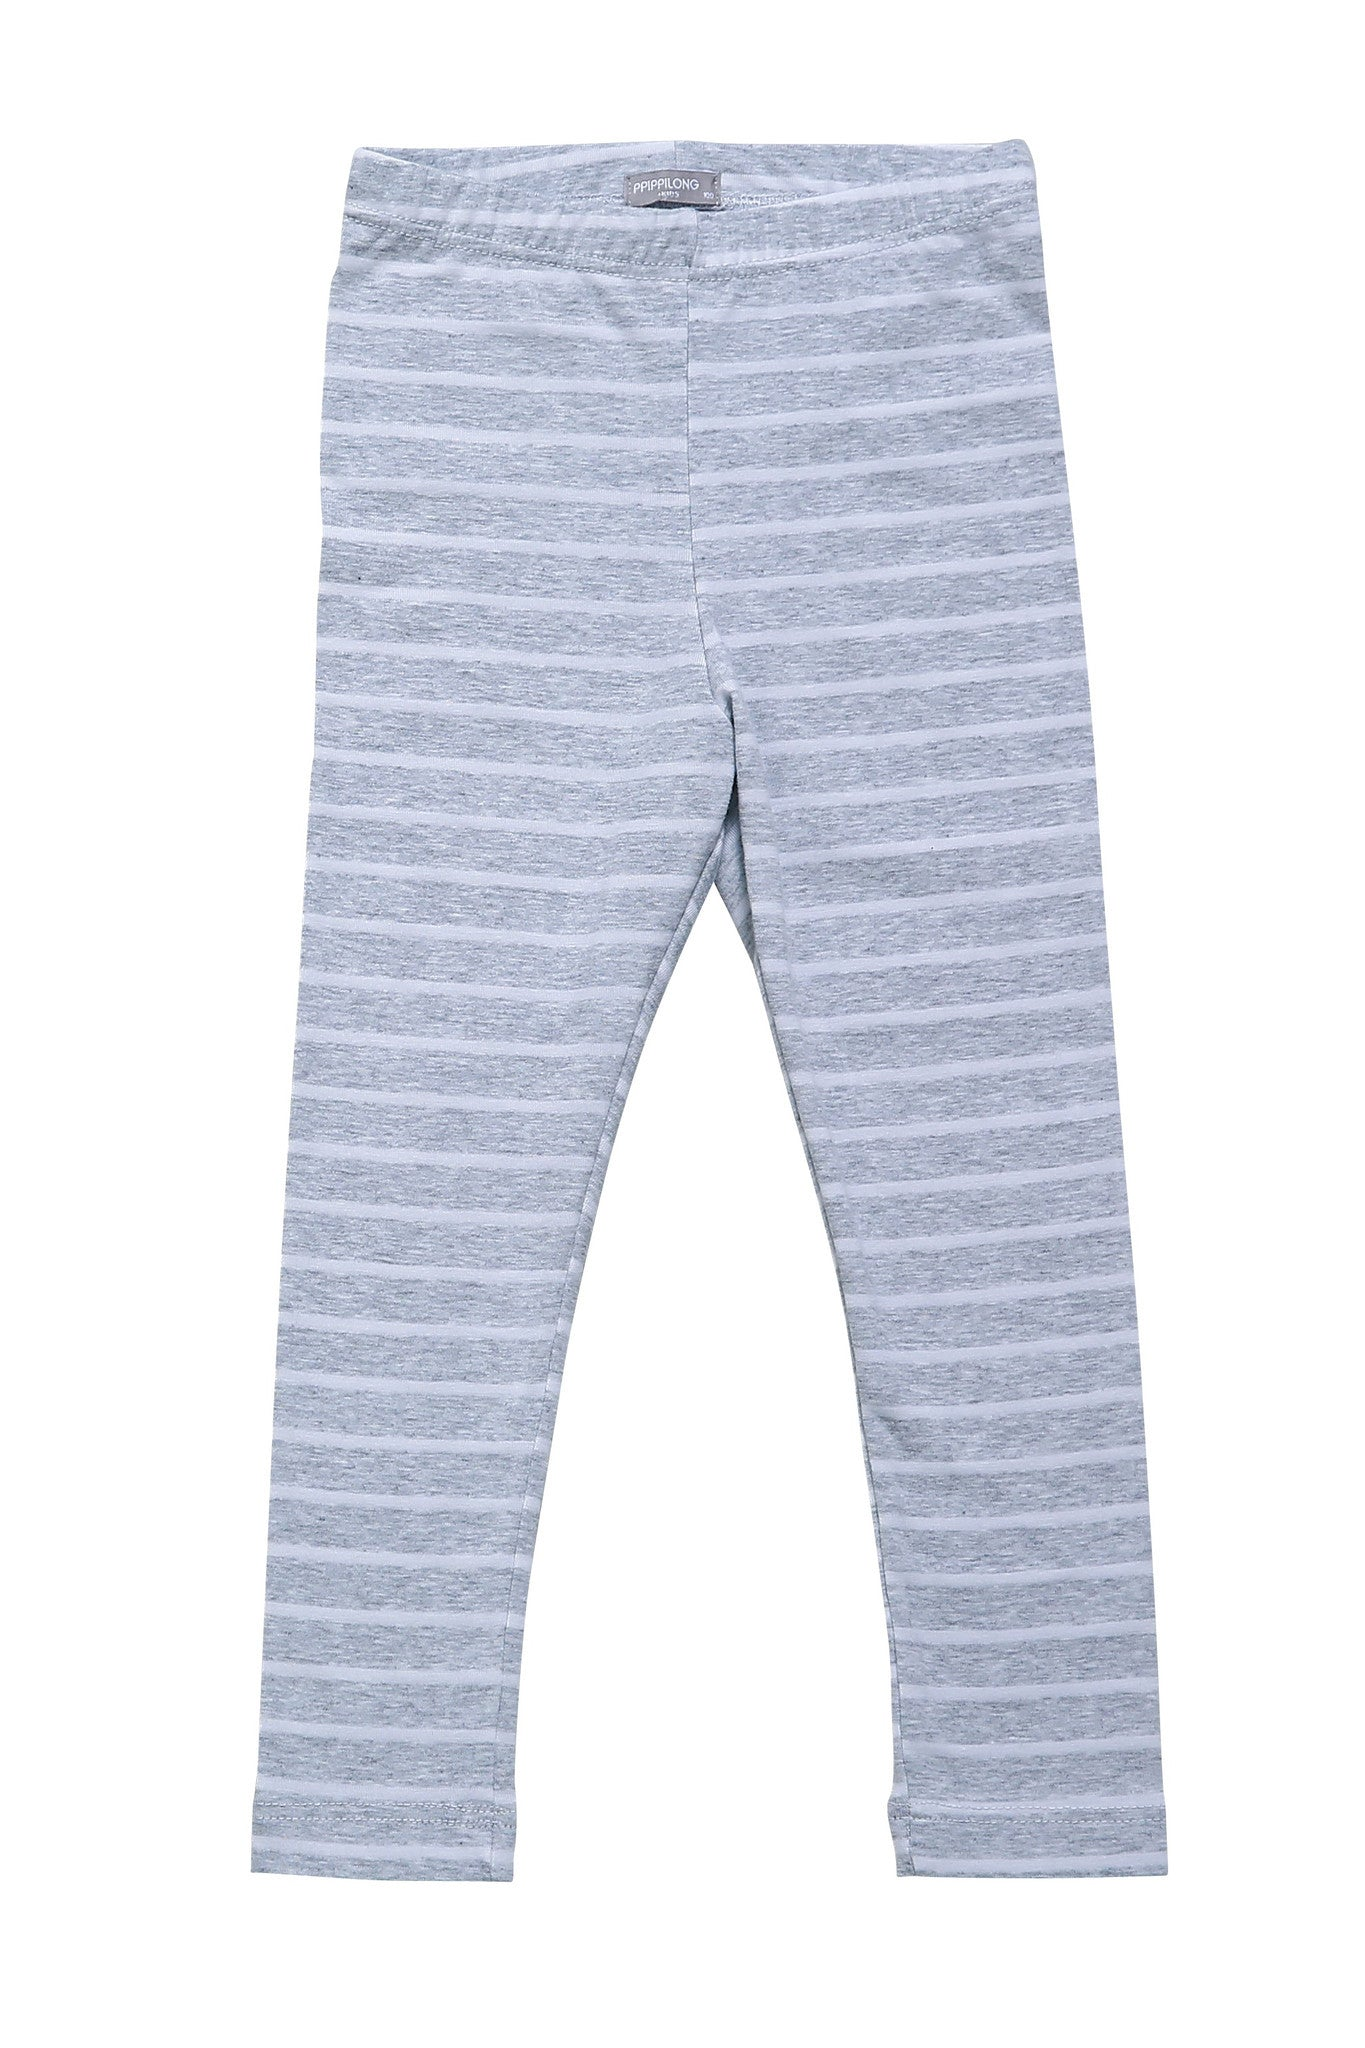 Leggings - Stripy Grey And White Leggings